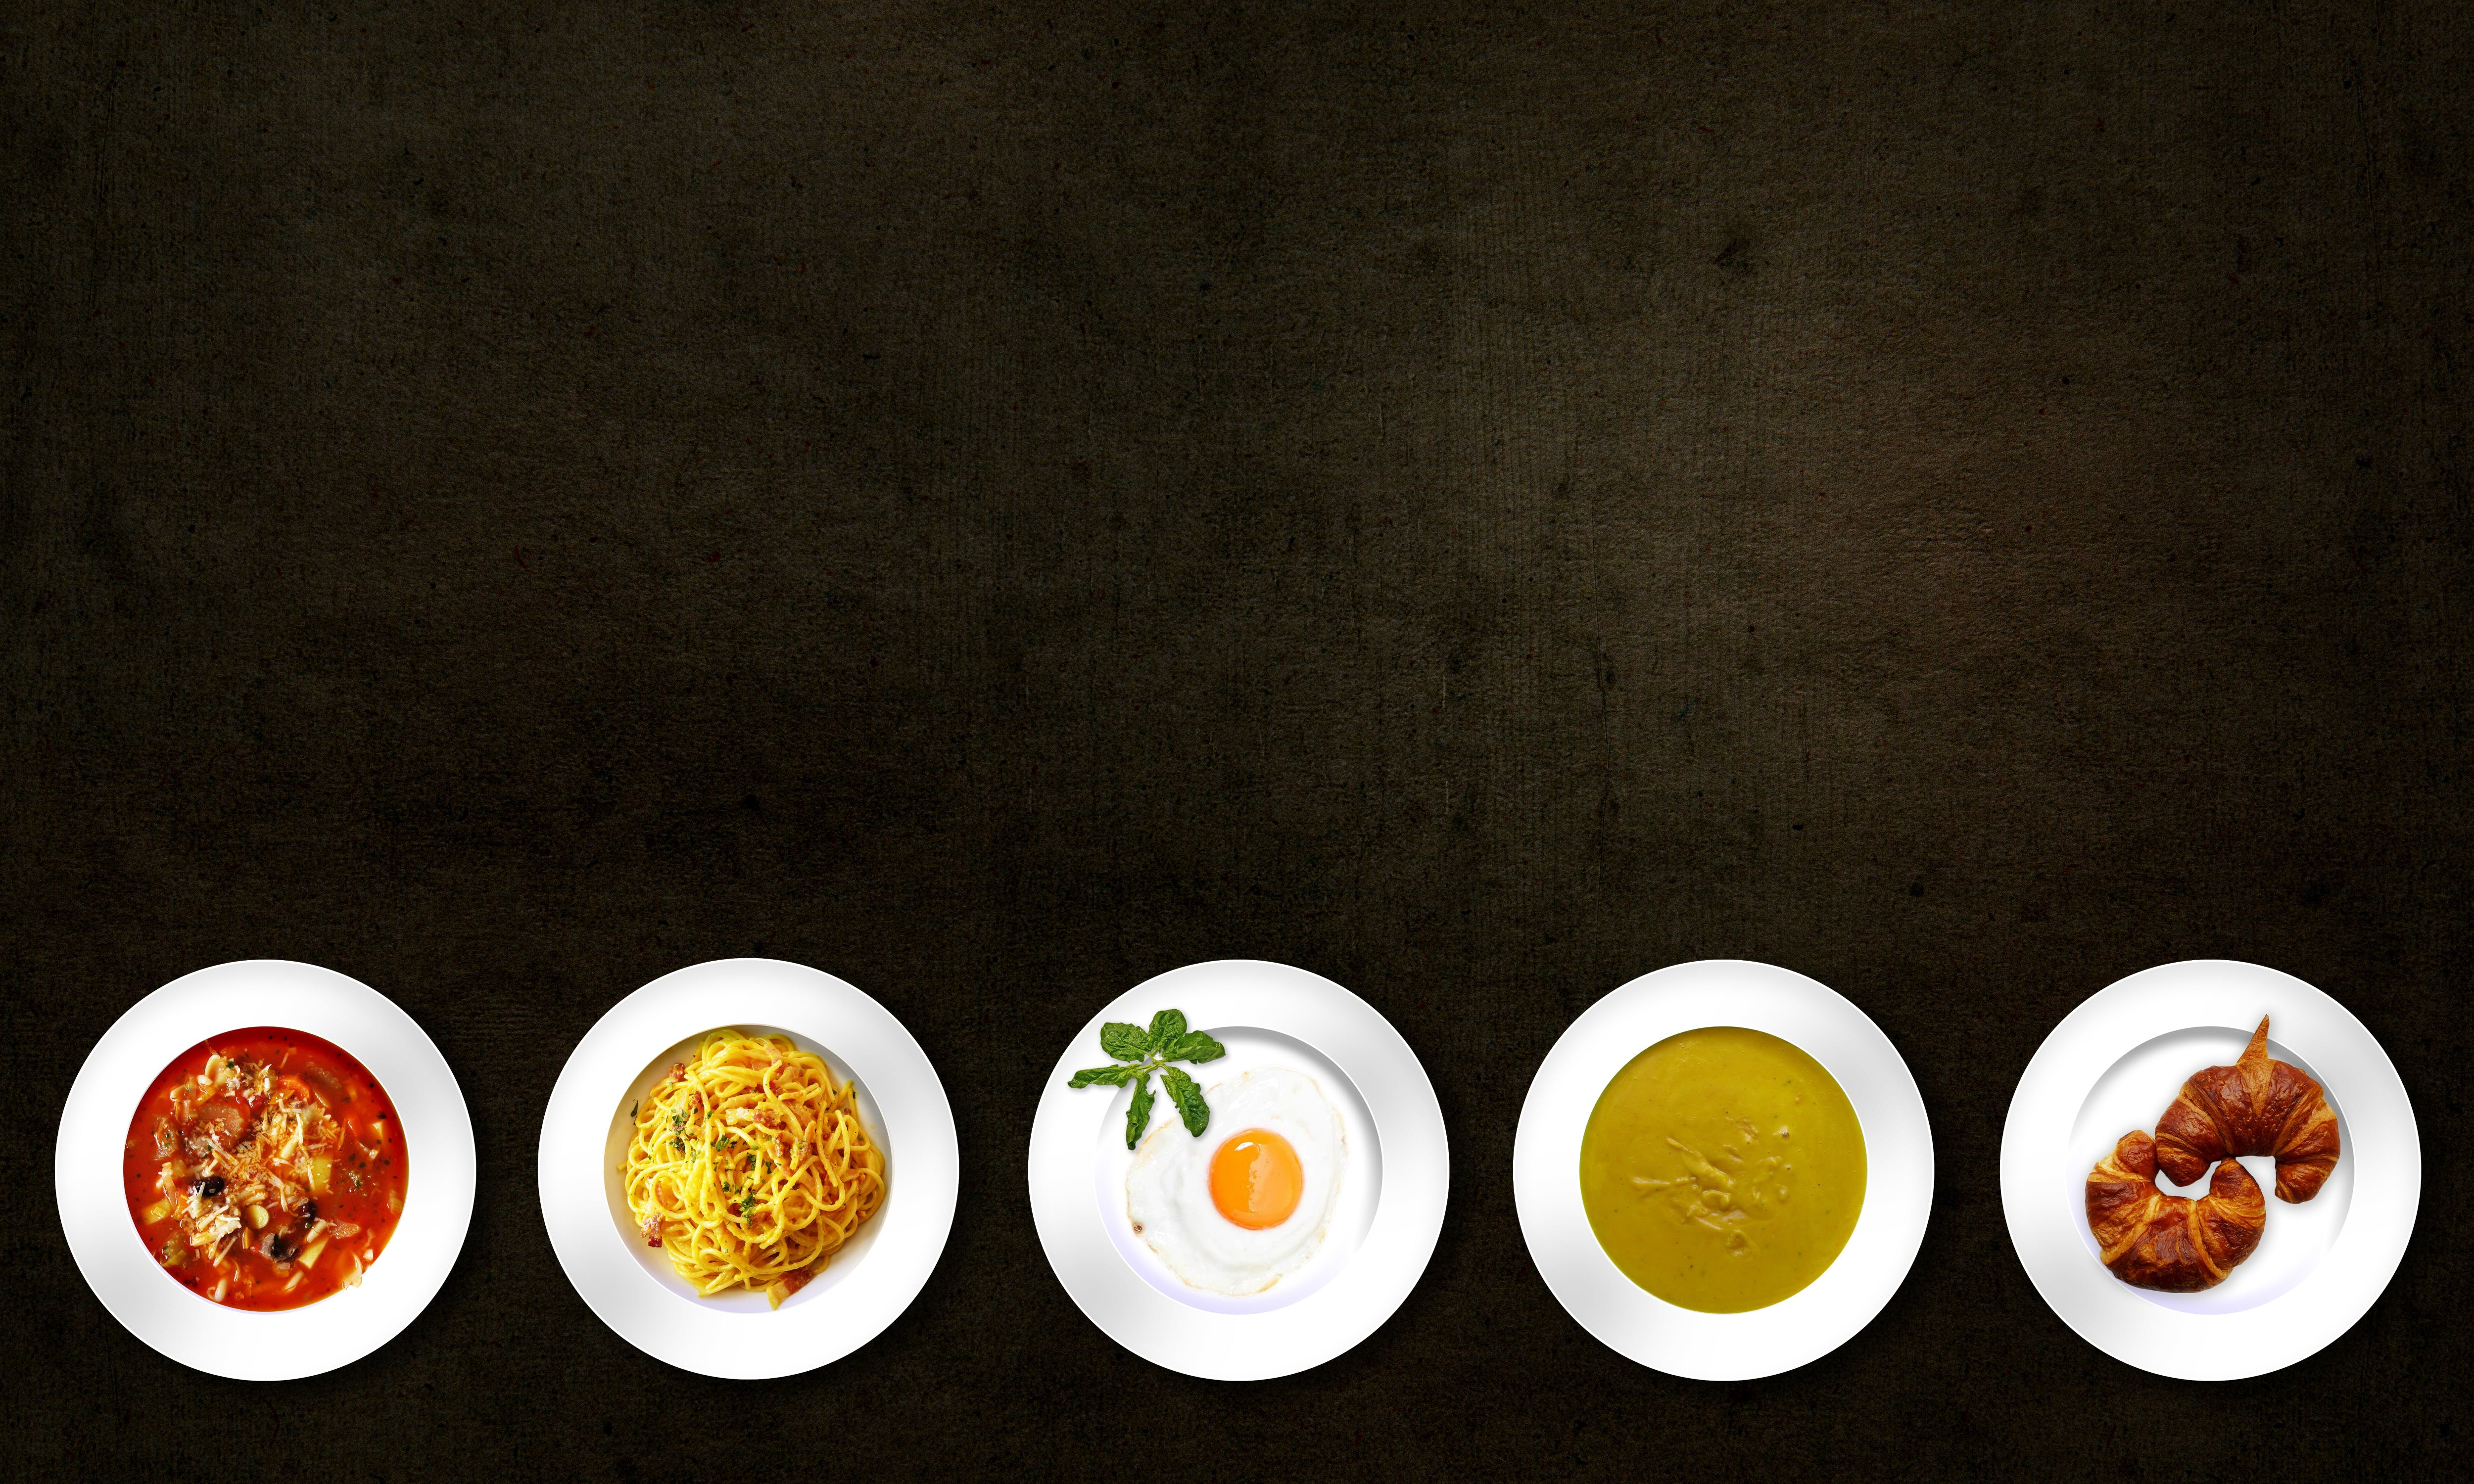 Five plates of different food